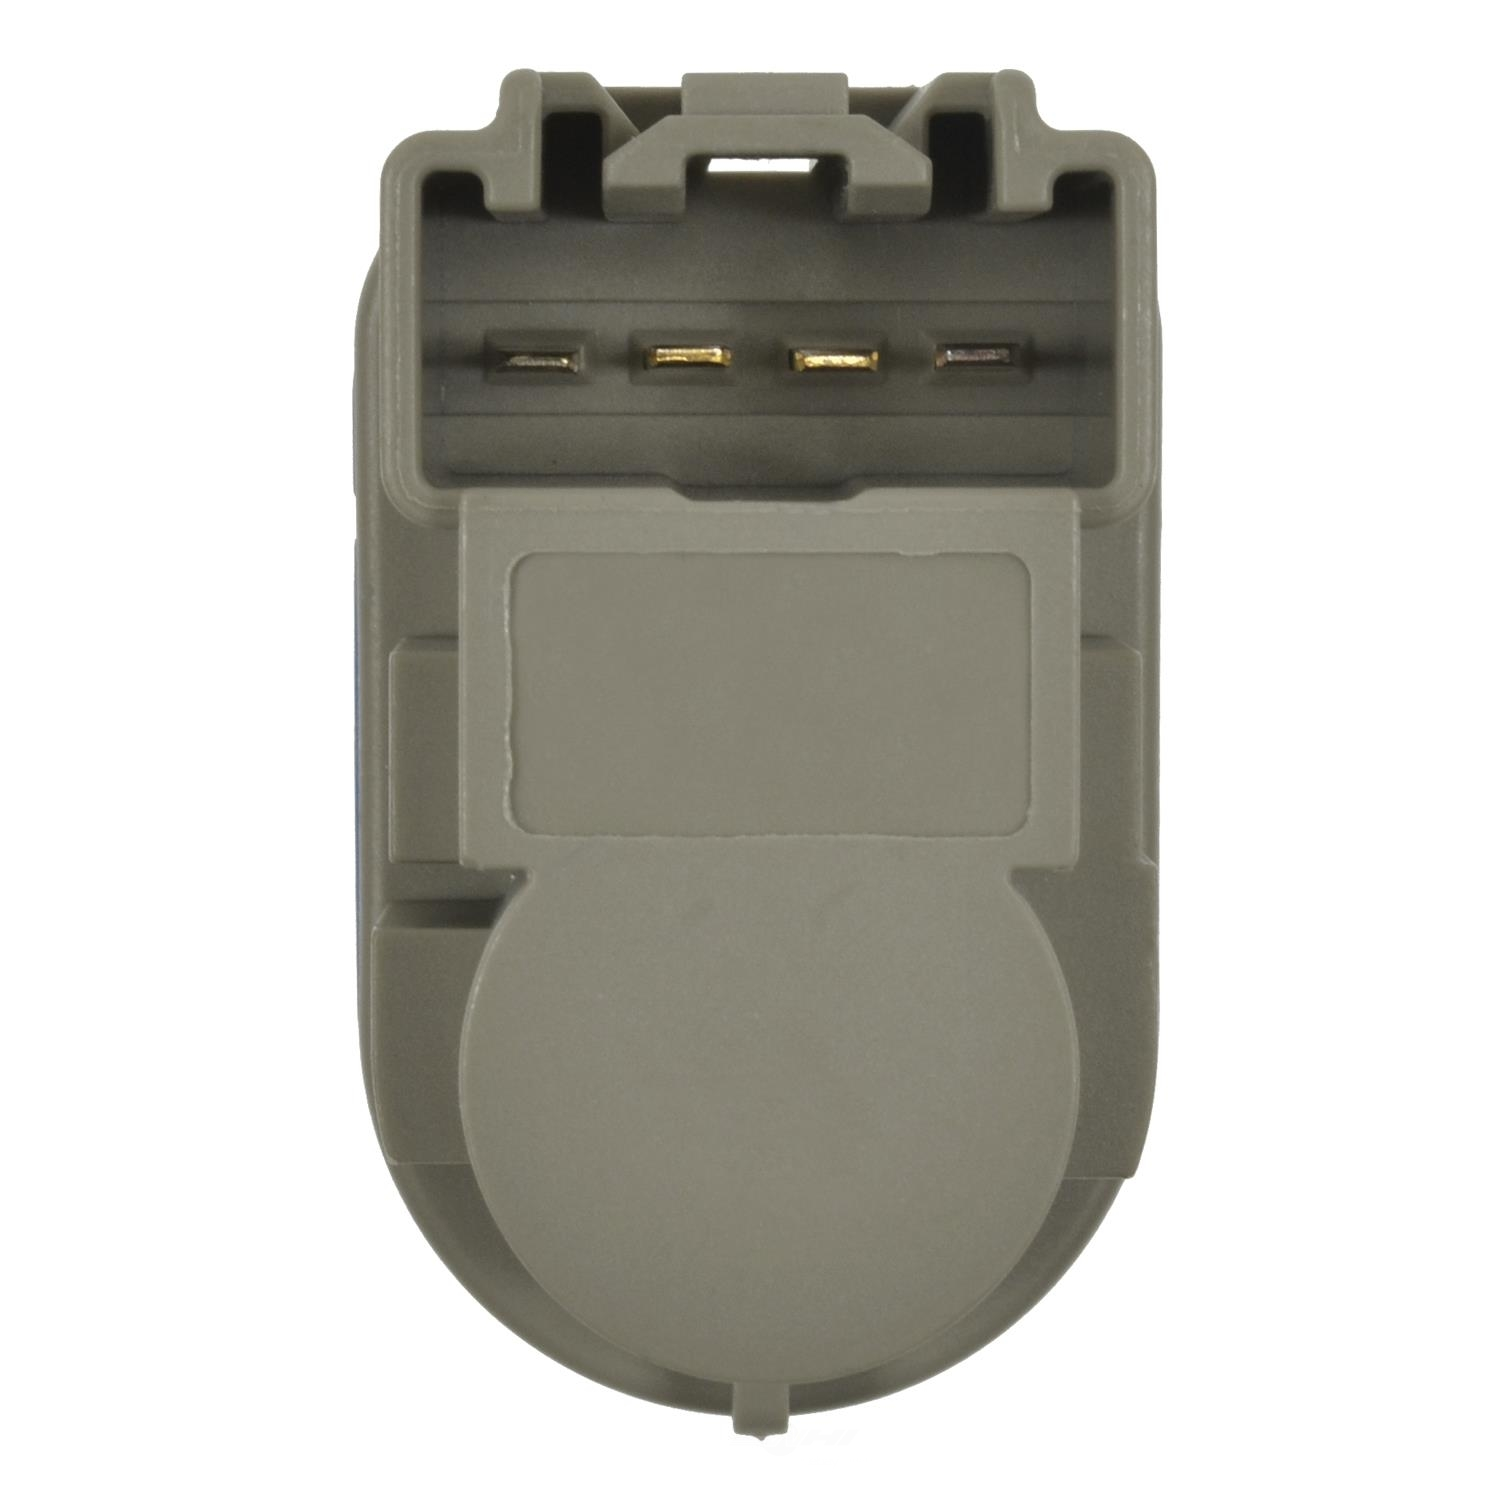 STANDARD T-SERIES - Brake Light Switch - STT SLS510T